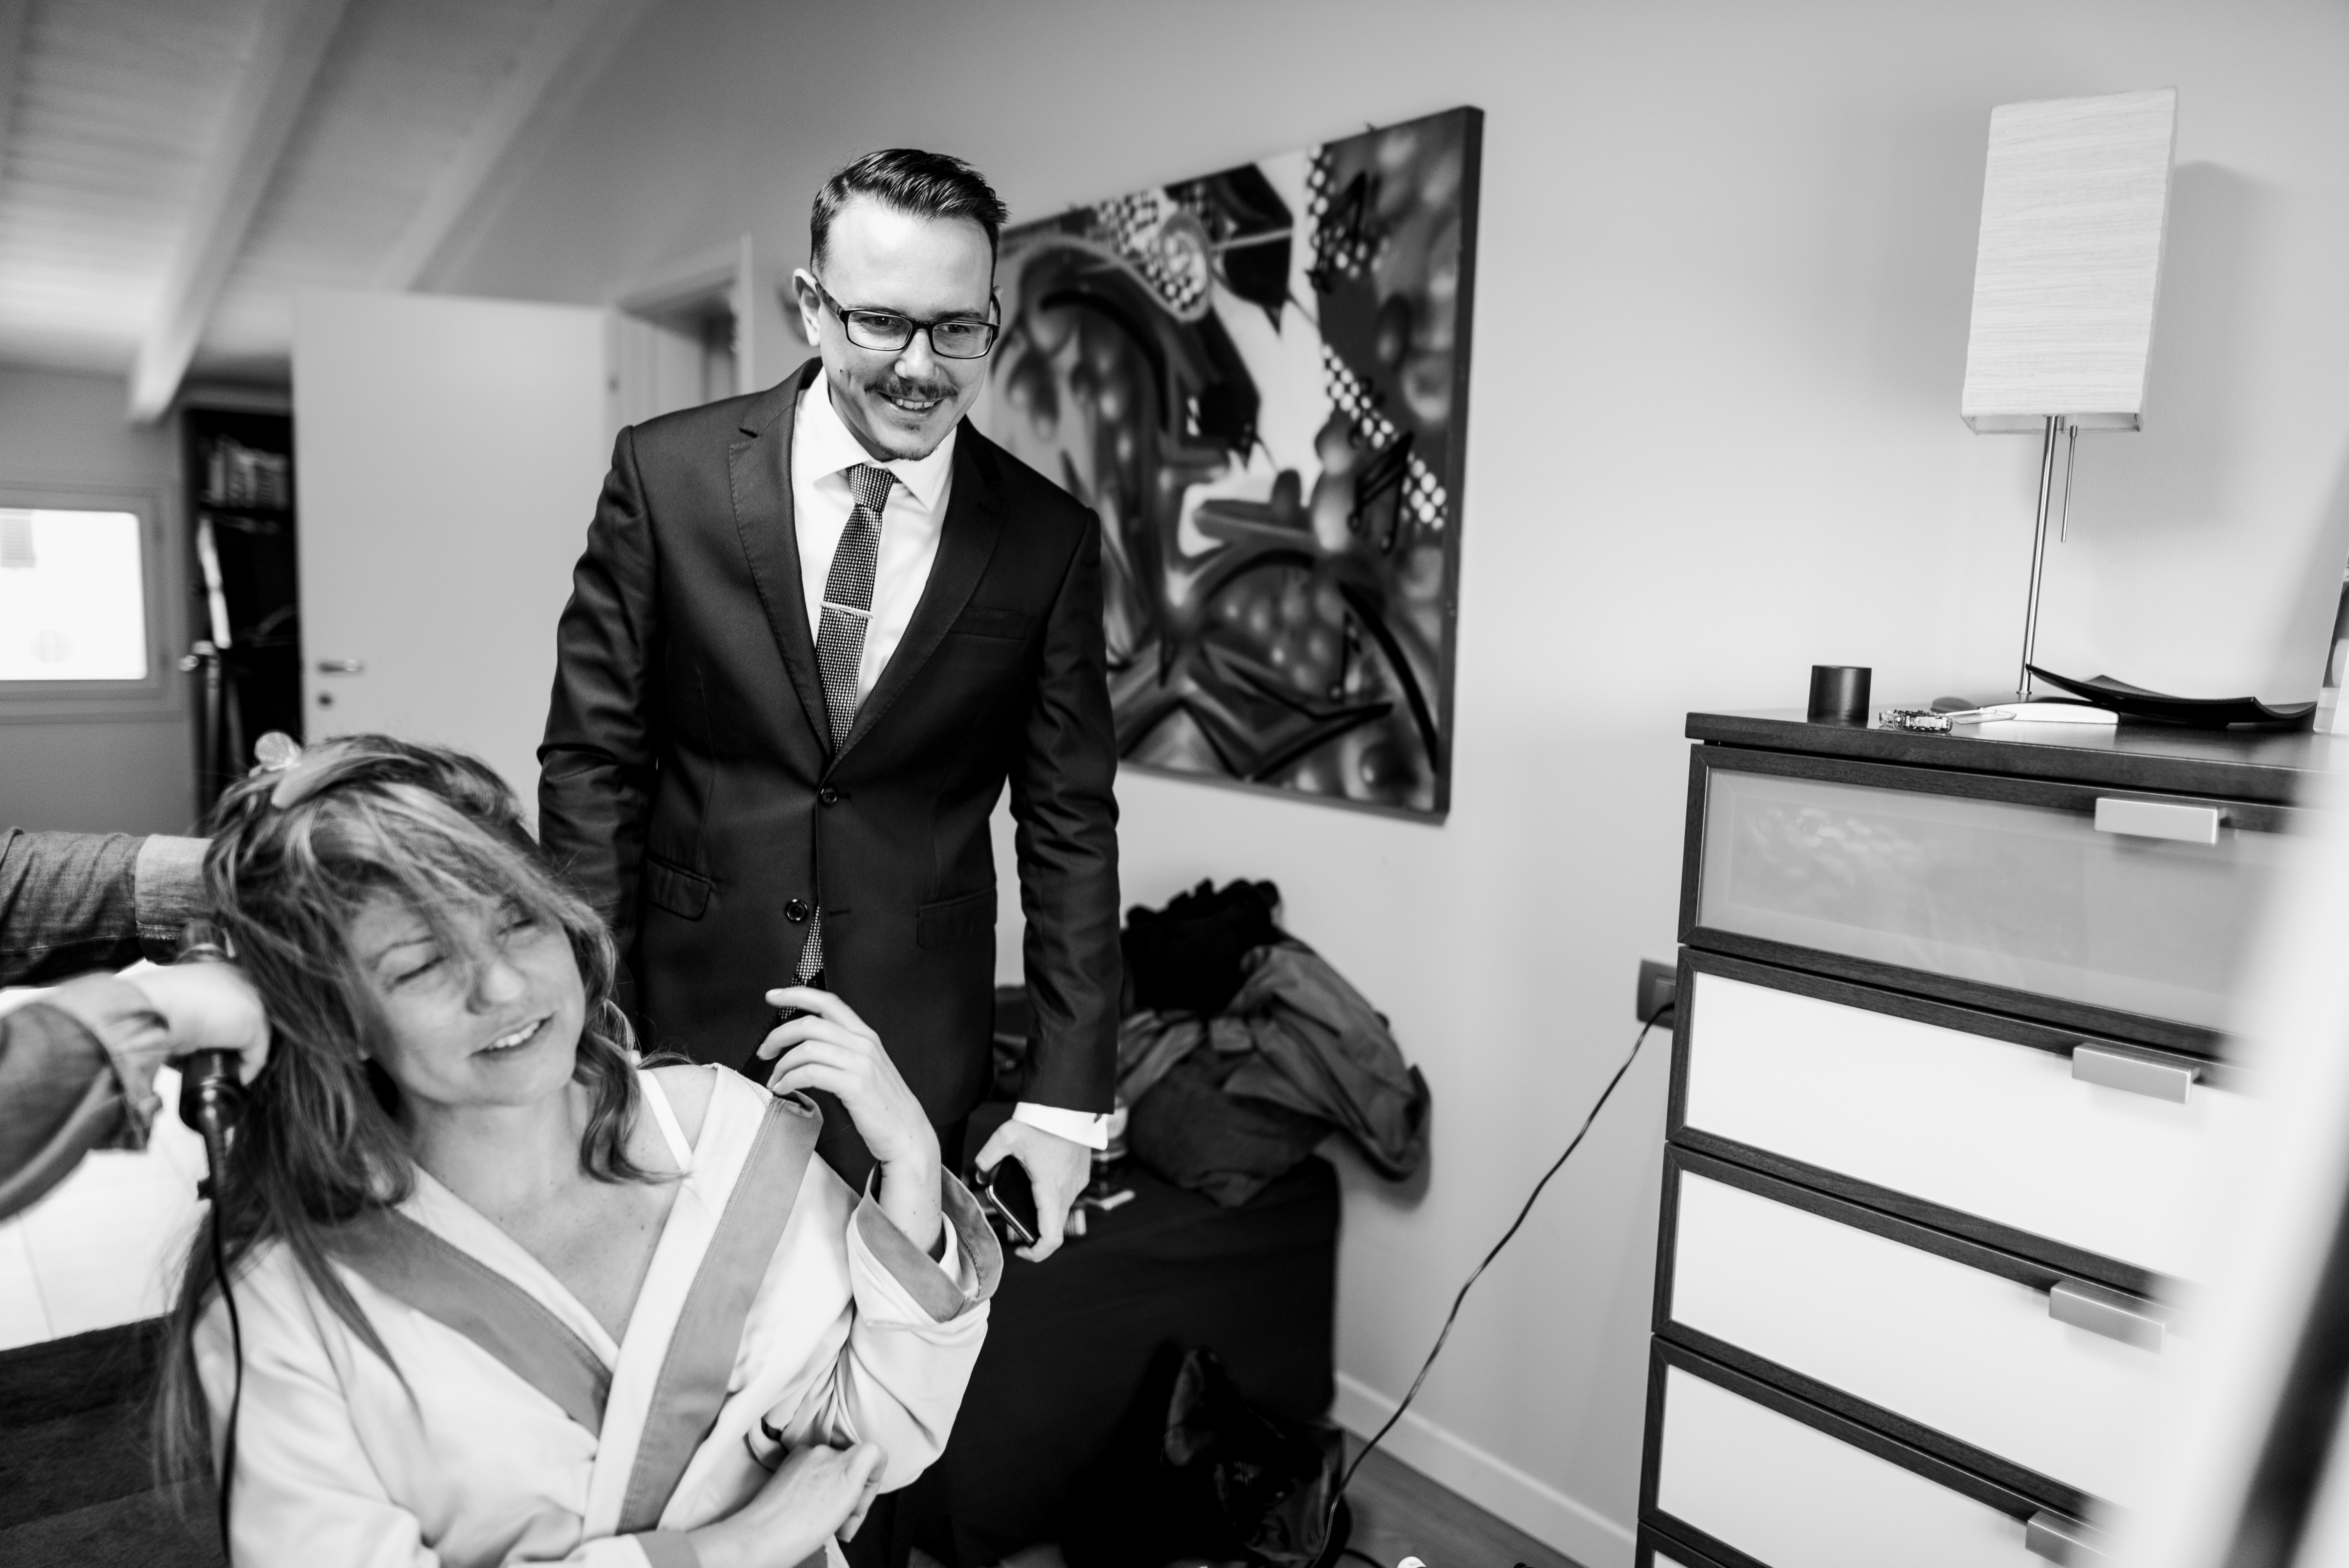 wedding photographer in Northern Italy, wedding photographer in monastery, wedding photographer in Italy, wedding photographer, best wedding photographer in Italy